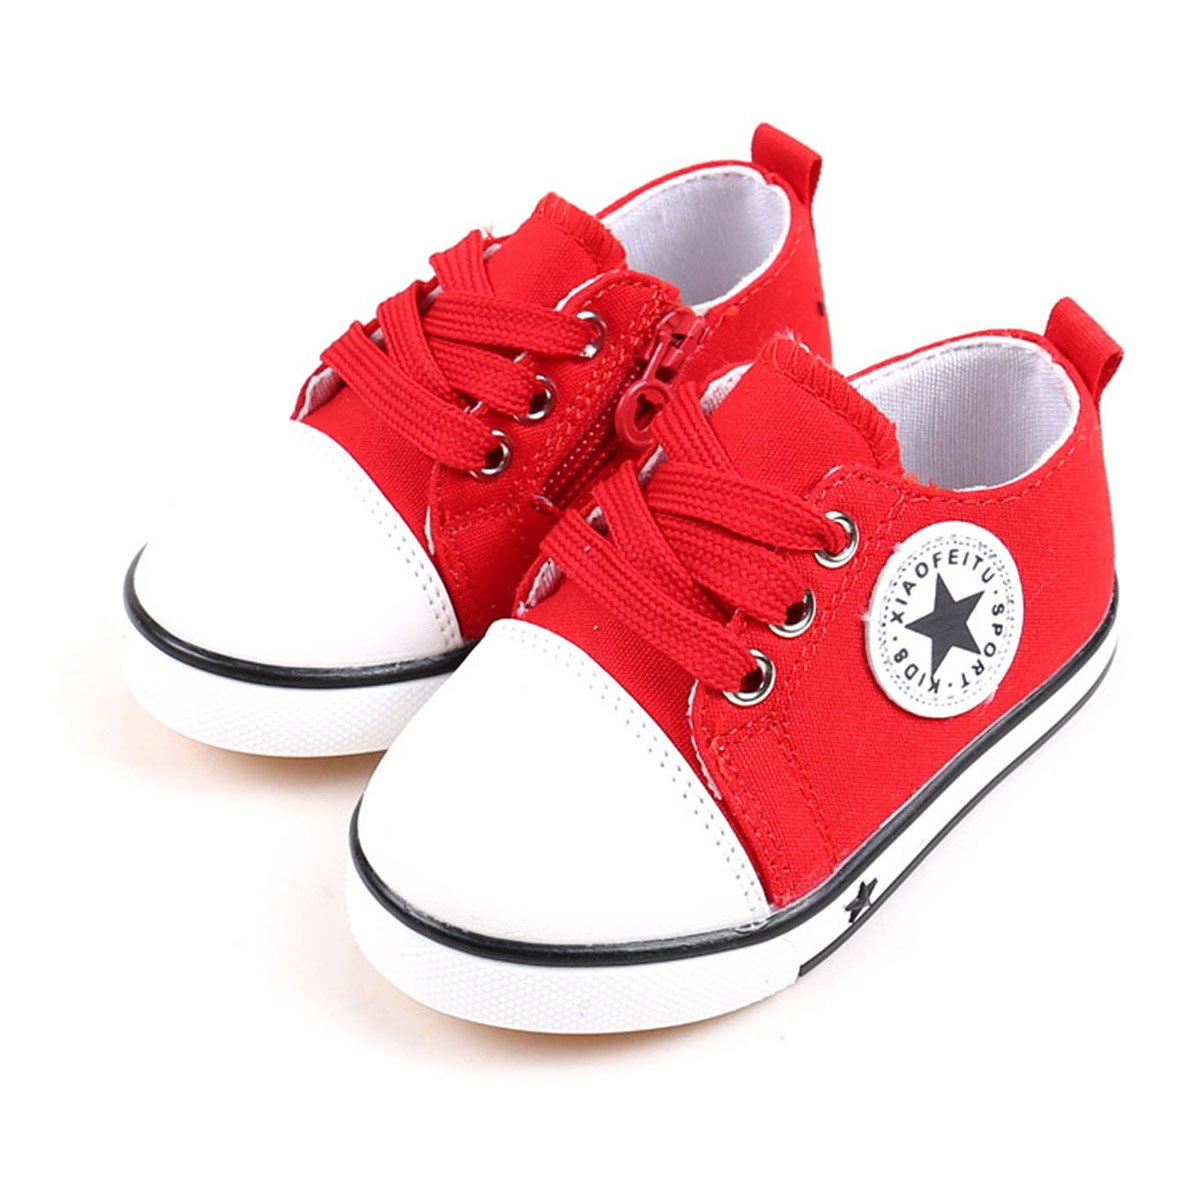 Tutoo Unisex Baby Boys Girls Shoes Kids Canvas Toddler Child Soft Sole Fashion Sneakers … (5.5 M U.S Toddler, A-red)